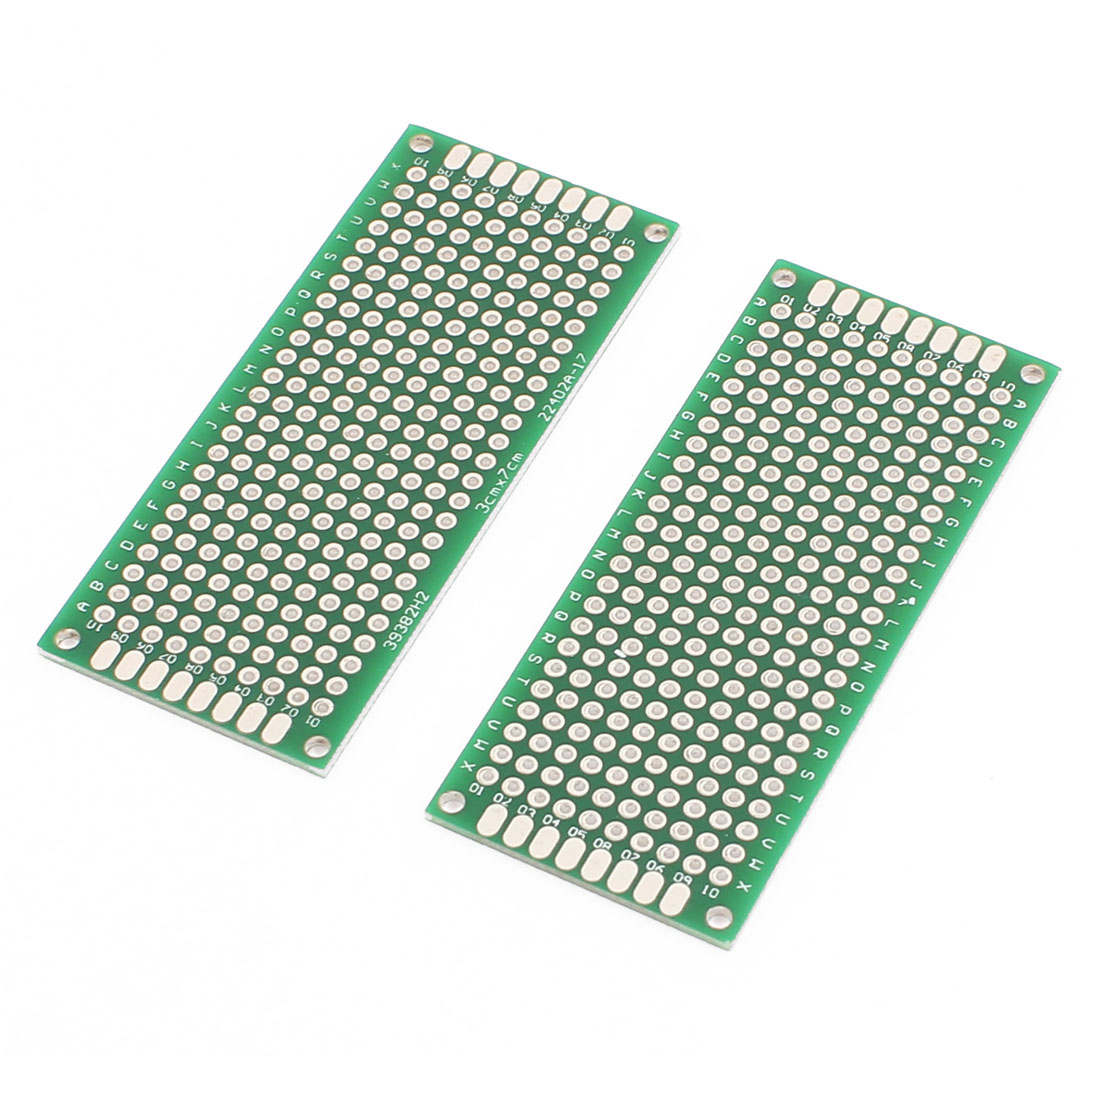 2 Pcs 3 x 7cm Double-Side Prototype Solderable Paper Universal PCB Board